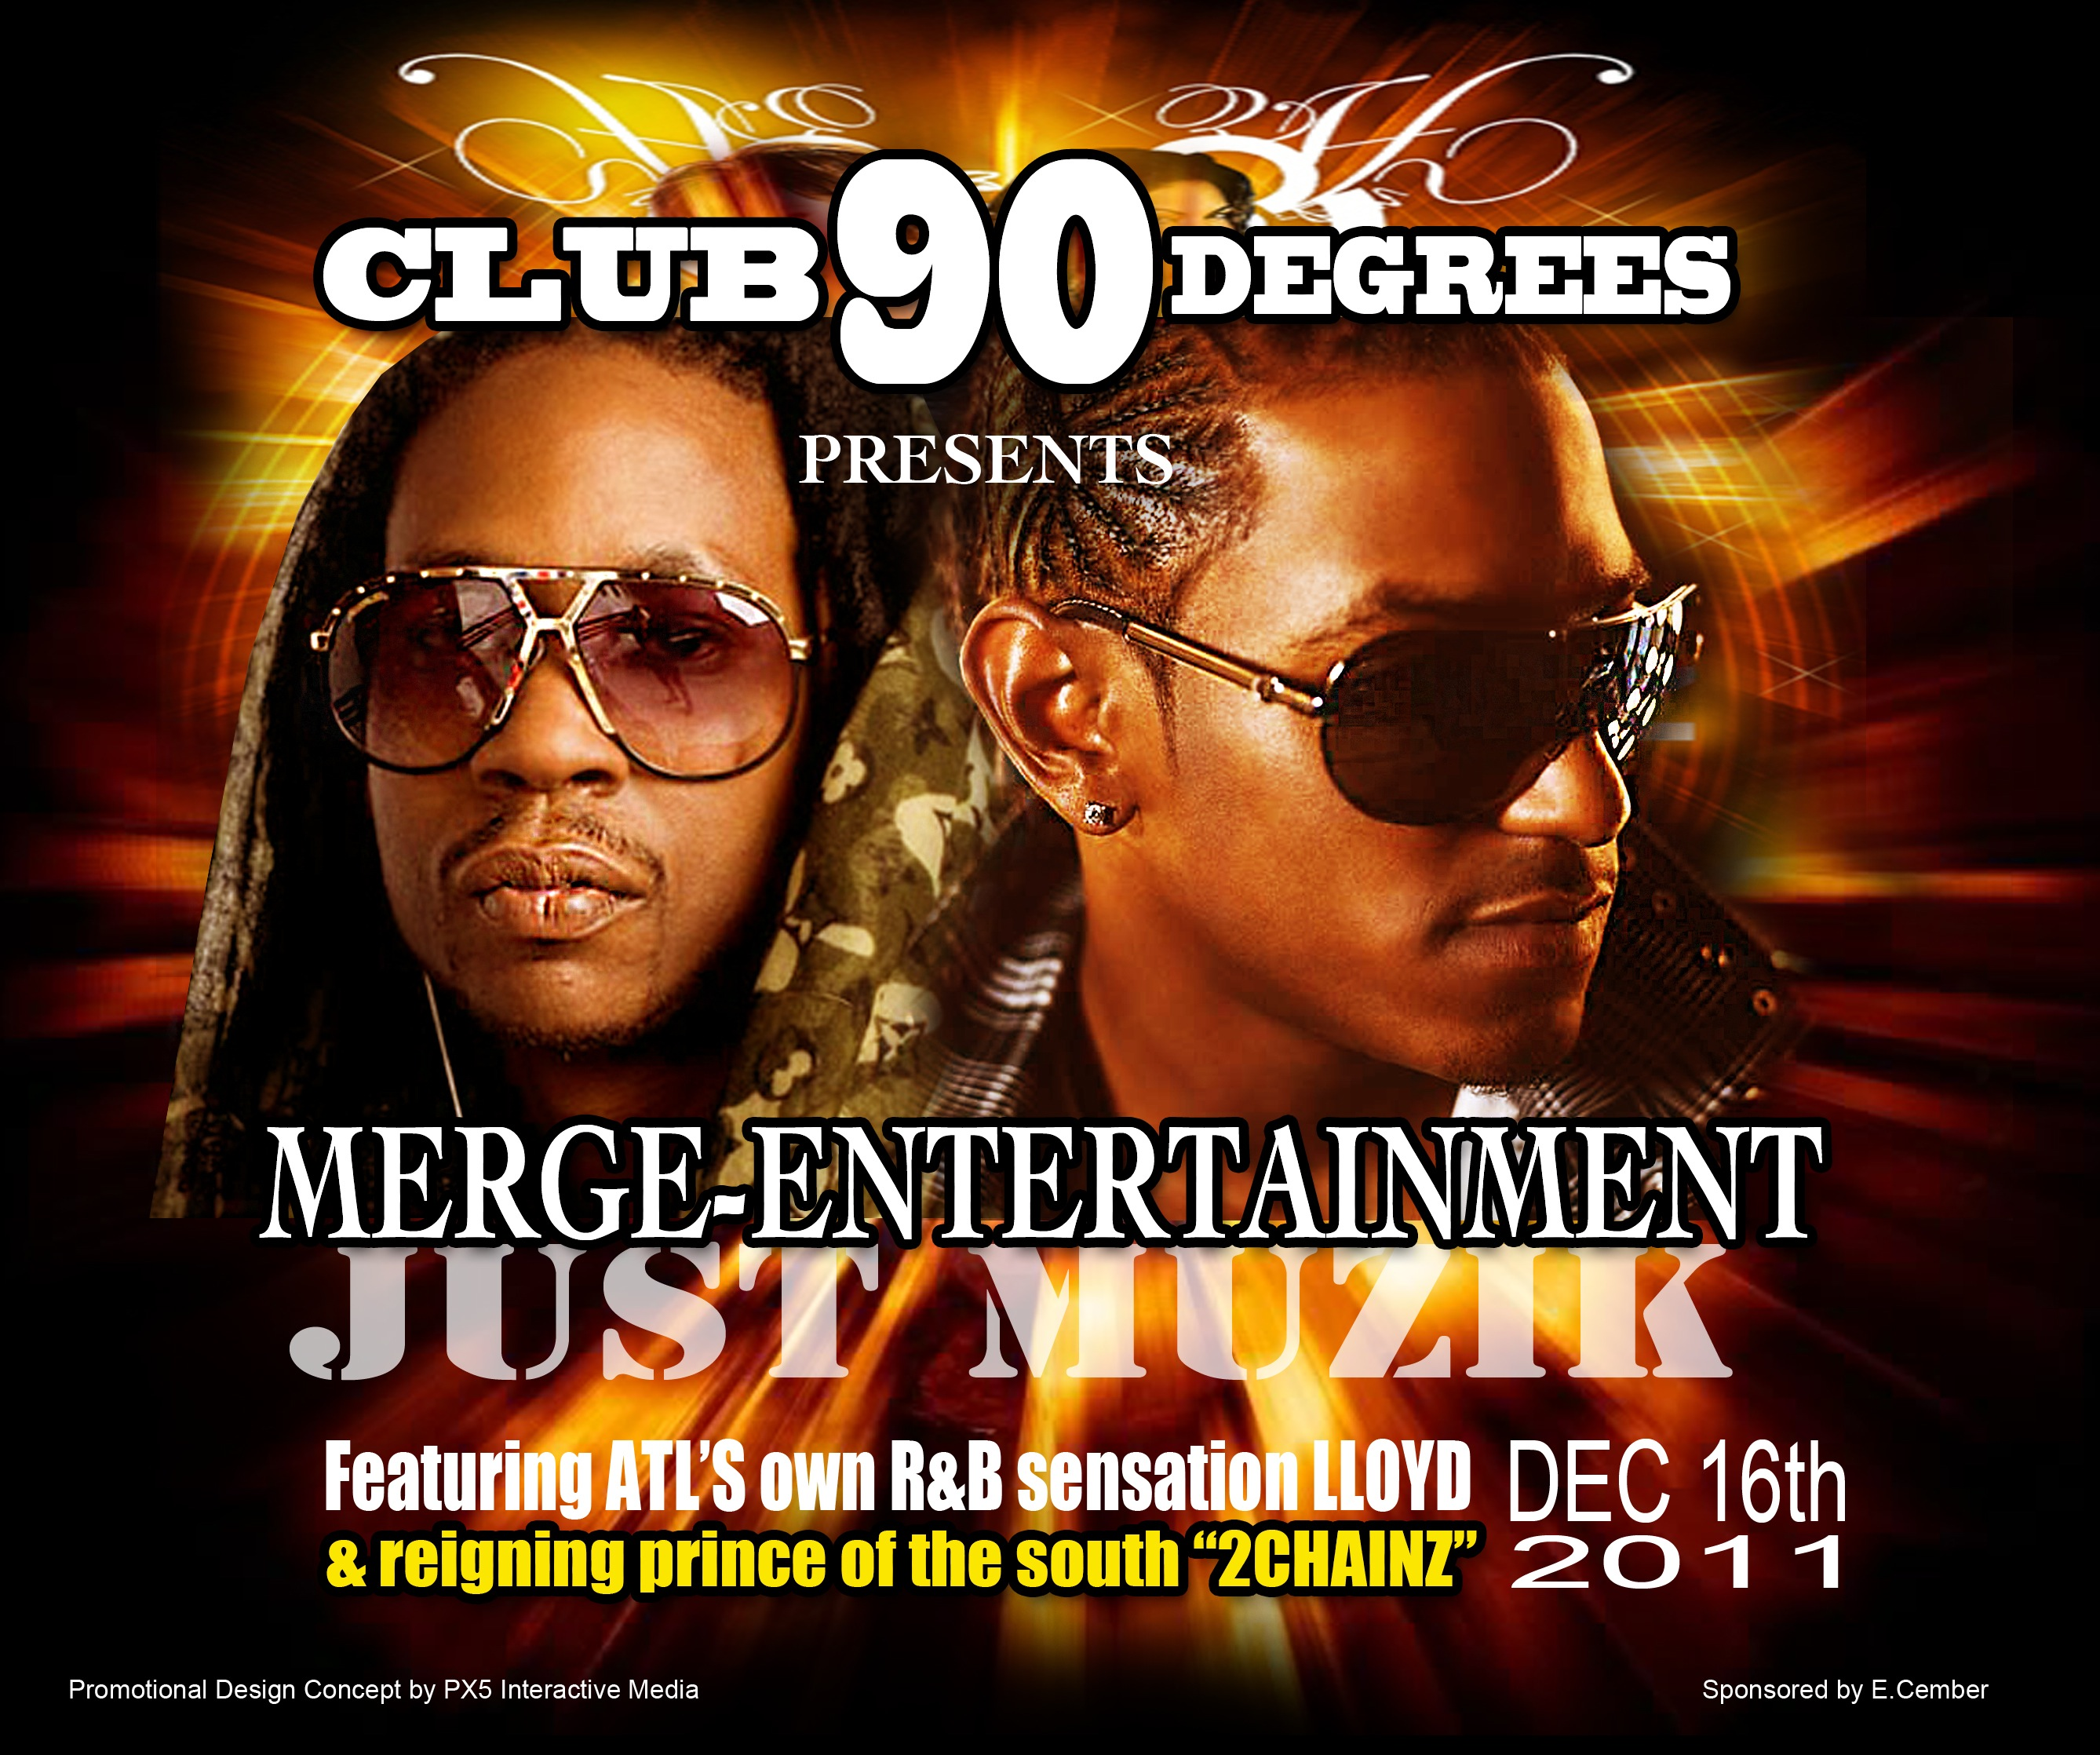 Celebrities Support & Shout Out @CuzinE215 #Ecember2K11 Events Ft @2Chainz @Lloyd_YG & More (Video)